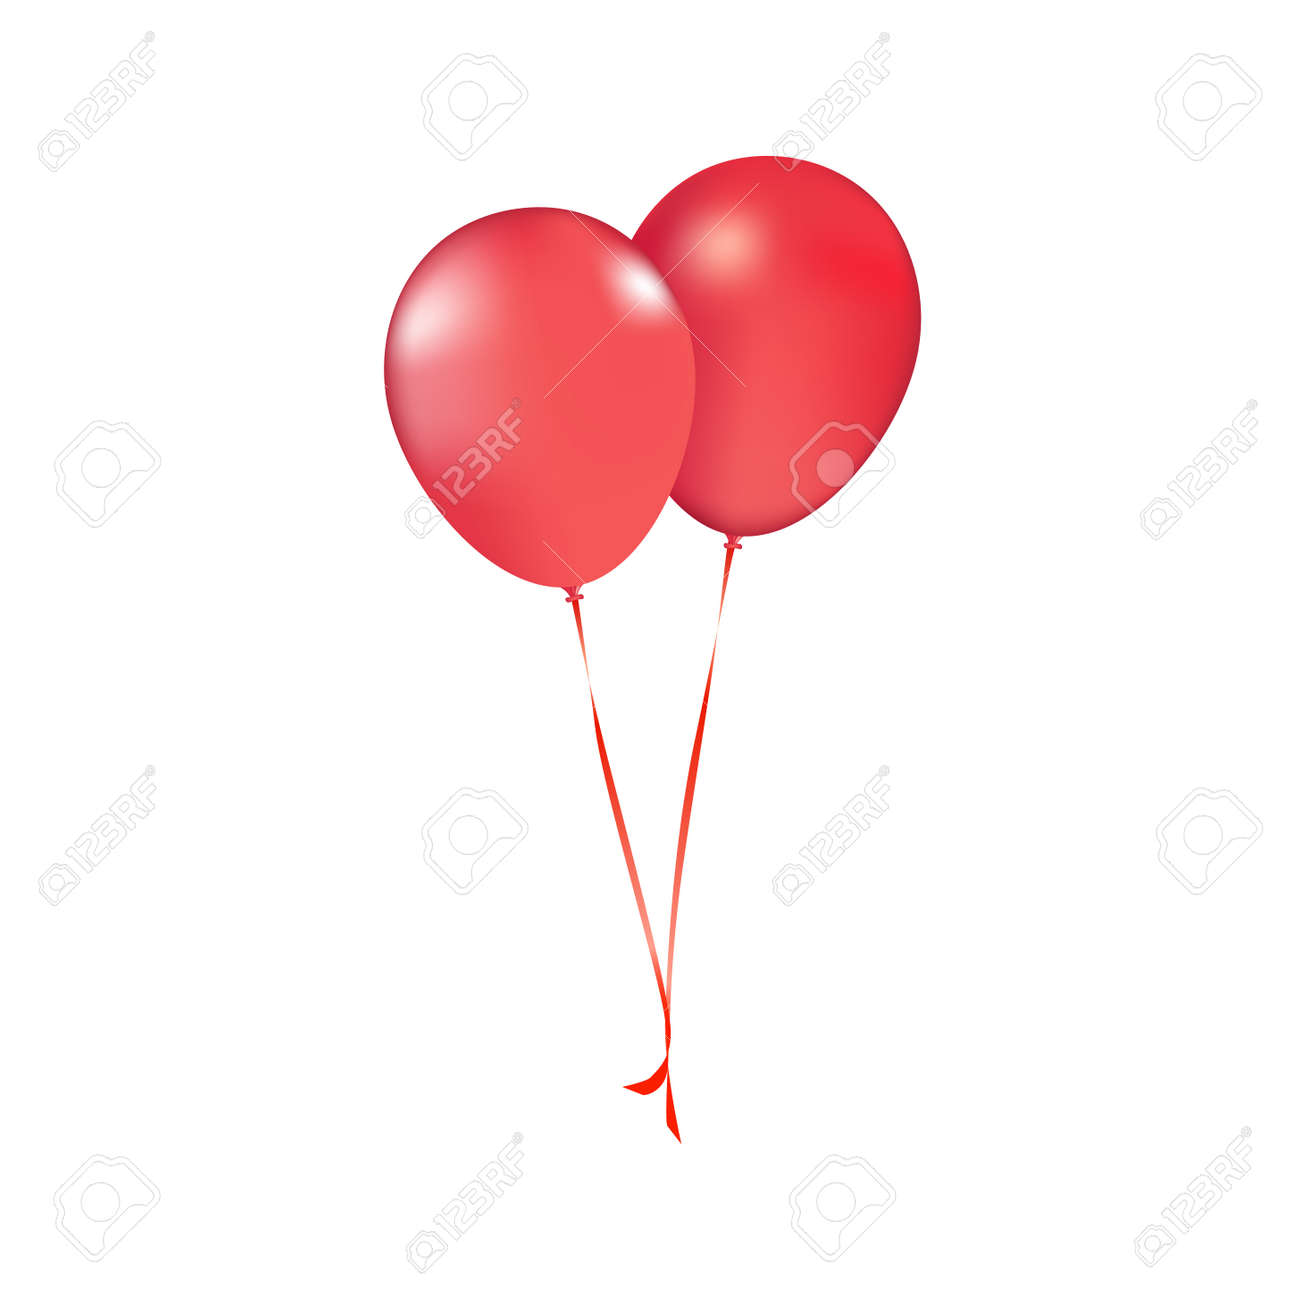 Party vector balloons red birthday balloon modern holiday decoration balloons anniversary retirement graduation occasion life events greeting card. Joy positive abstract. Vector realistic red balloons - 166911463